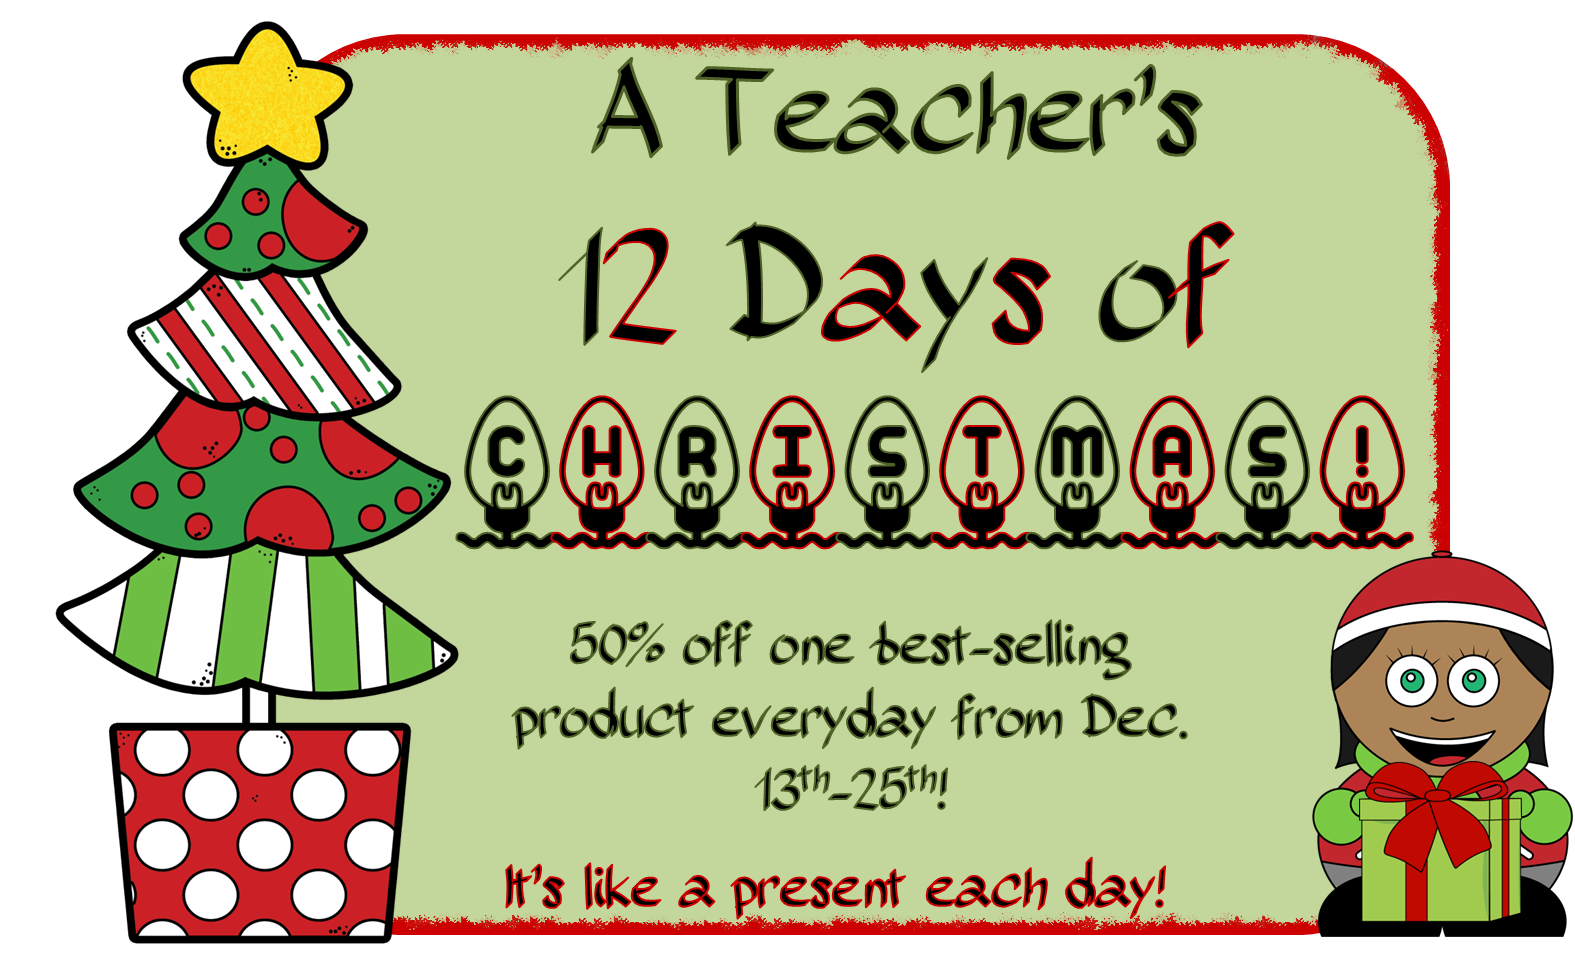 because you have been so amazing im excited to announce that i along with several other sellers are celebrating the teachers 12 days of christmas